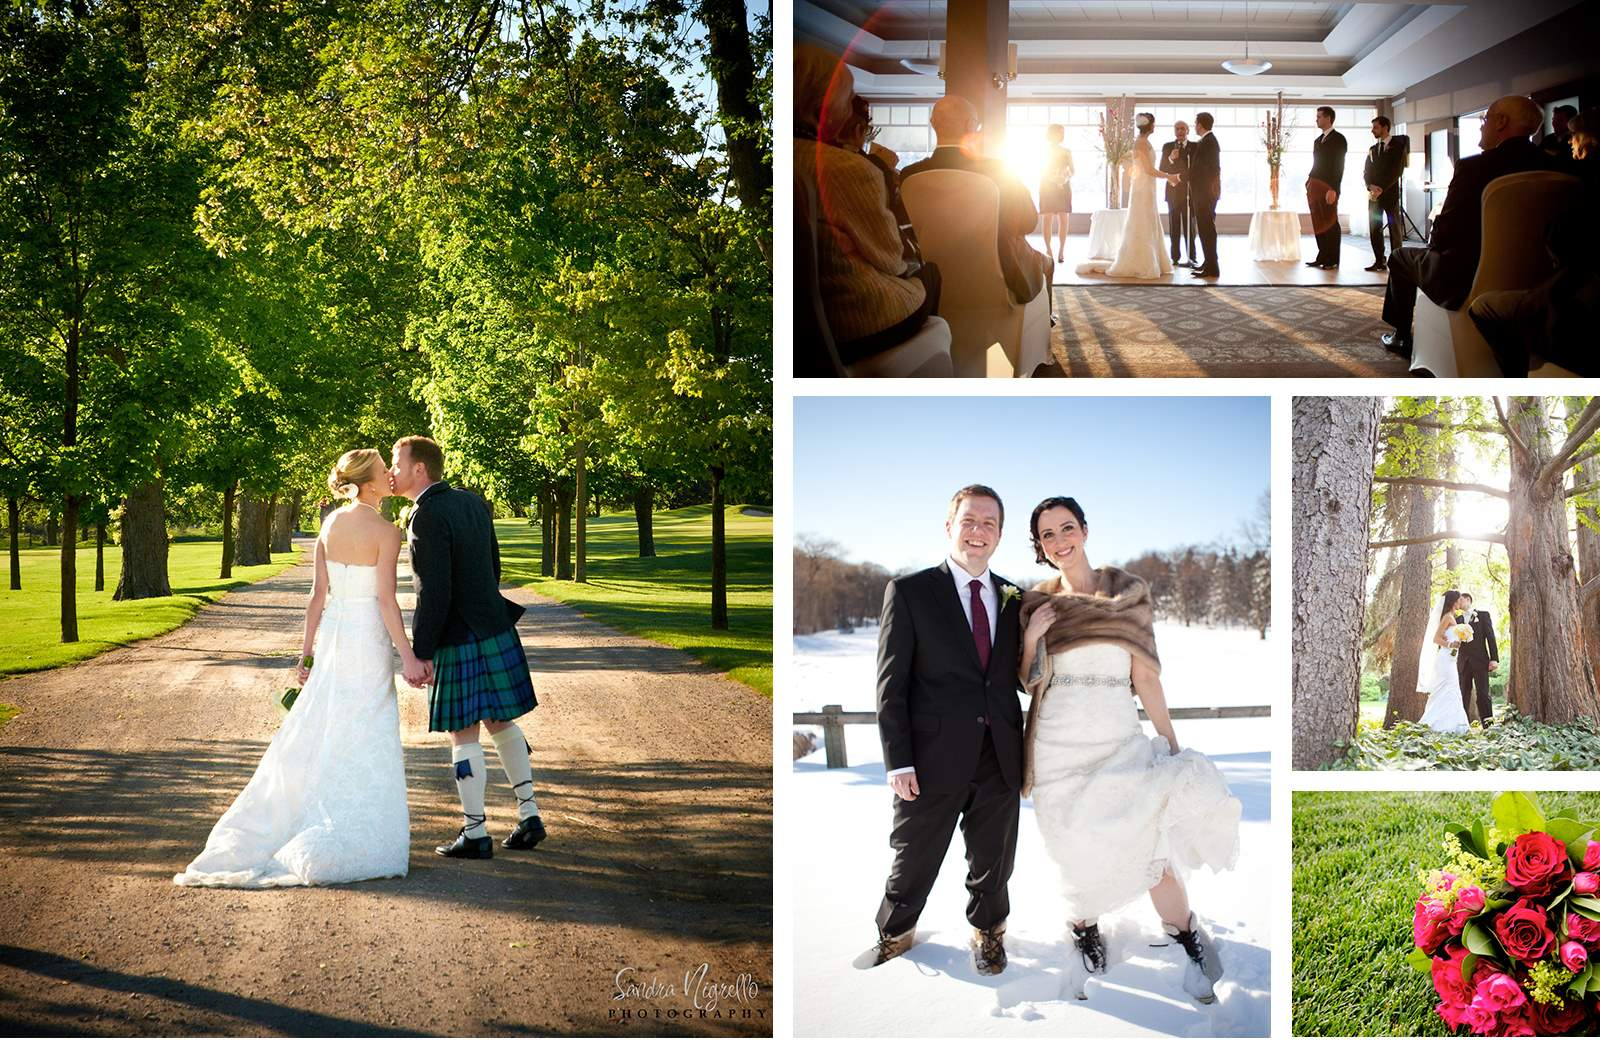 Weddings at Islington Golf Club